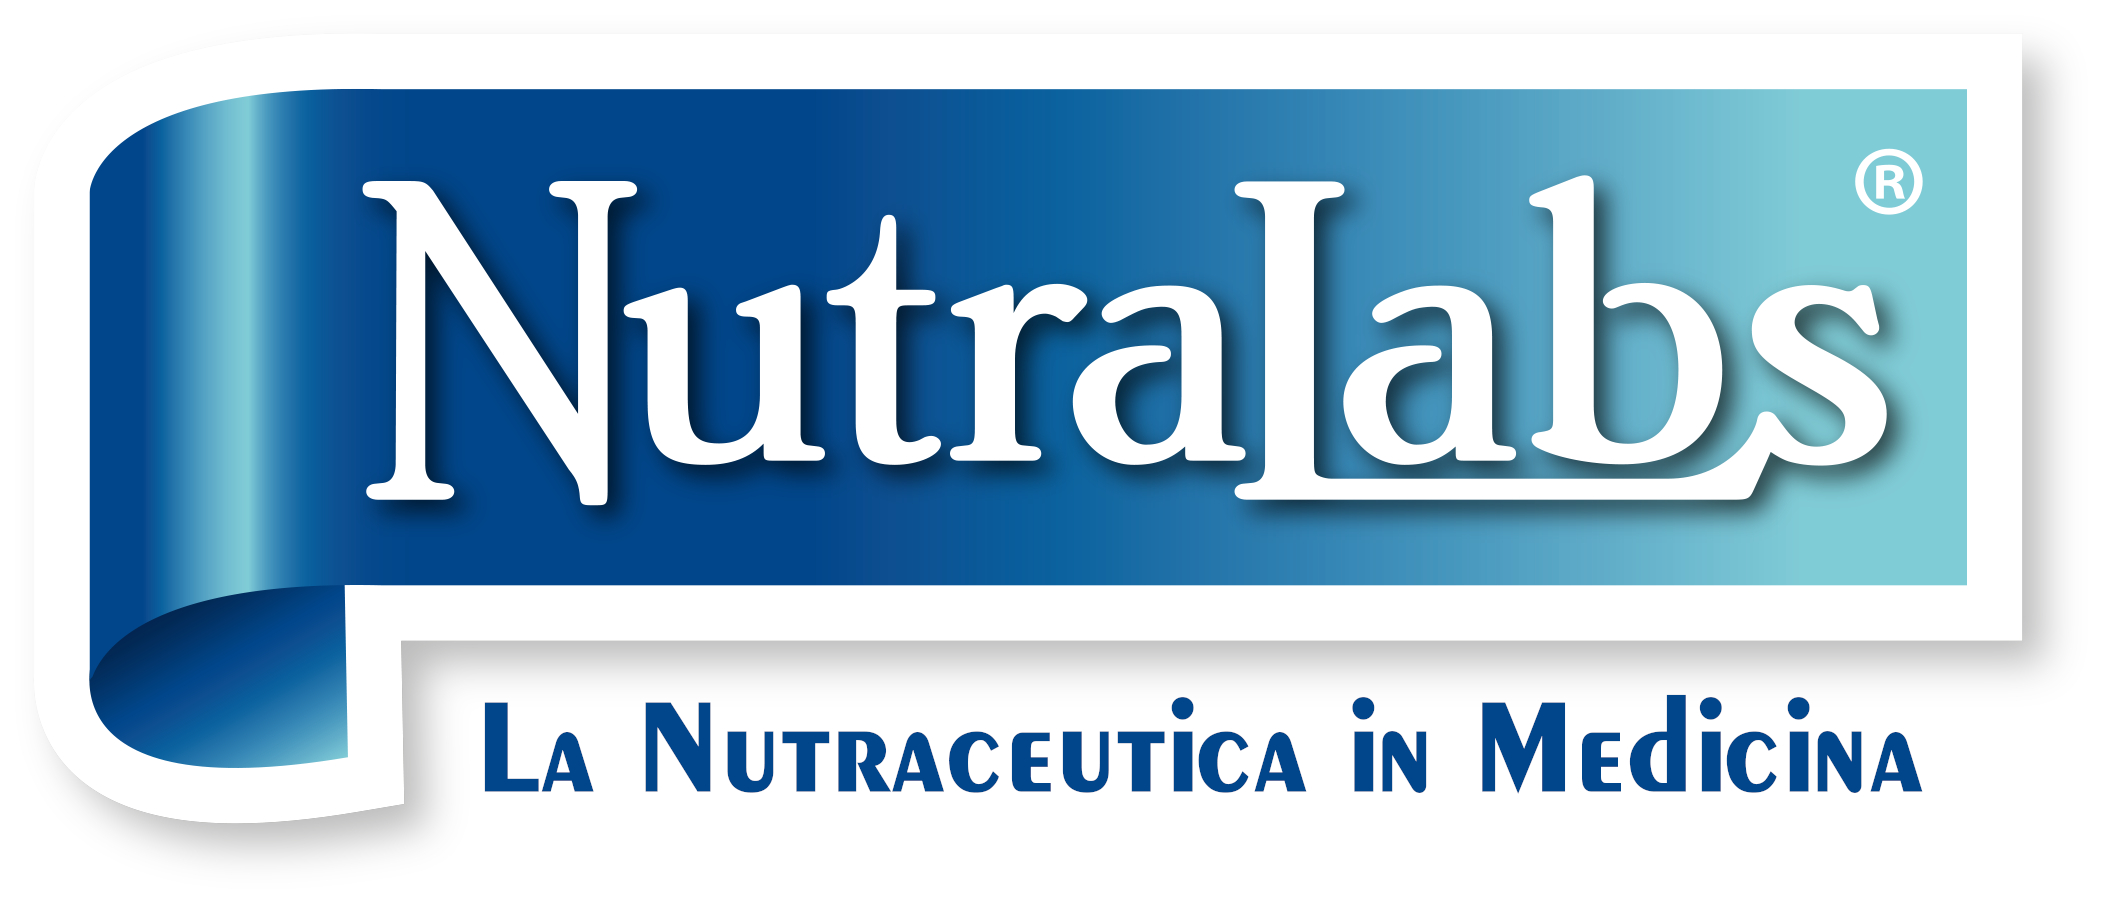 NutraLabs